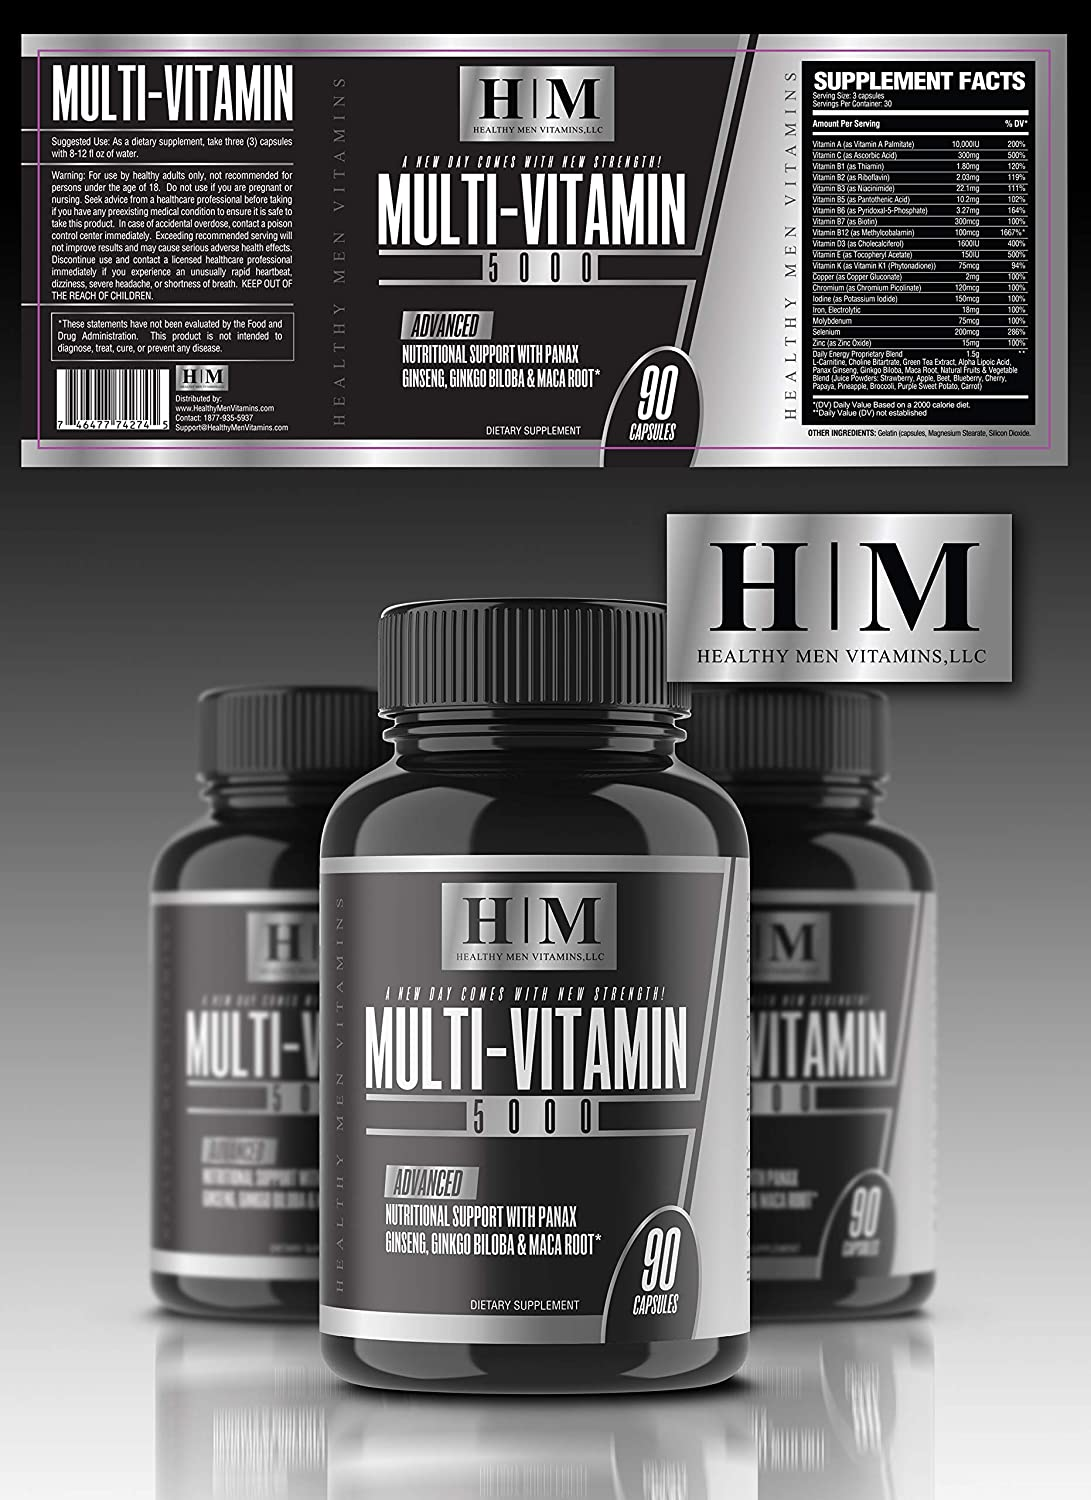 The Best Multivitamin Supplement for Men! Multi-Vitamin 5000 Infused with Panax Ginseng, Maca Root, Green Tea Extract & Ginkgo Biloba for Daily Energy, Vitality and Memory(90 Capsules) Vitamin A - K